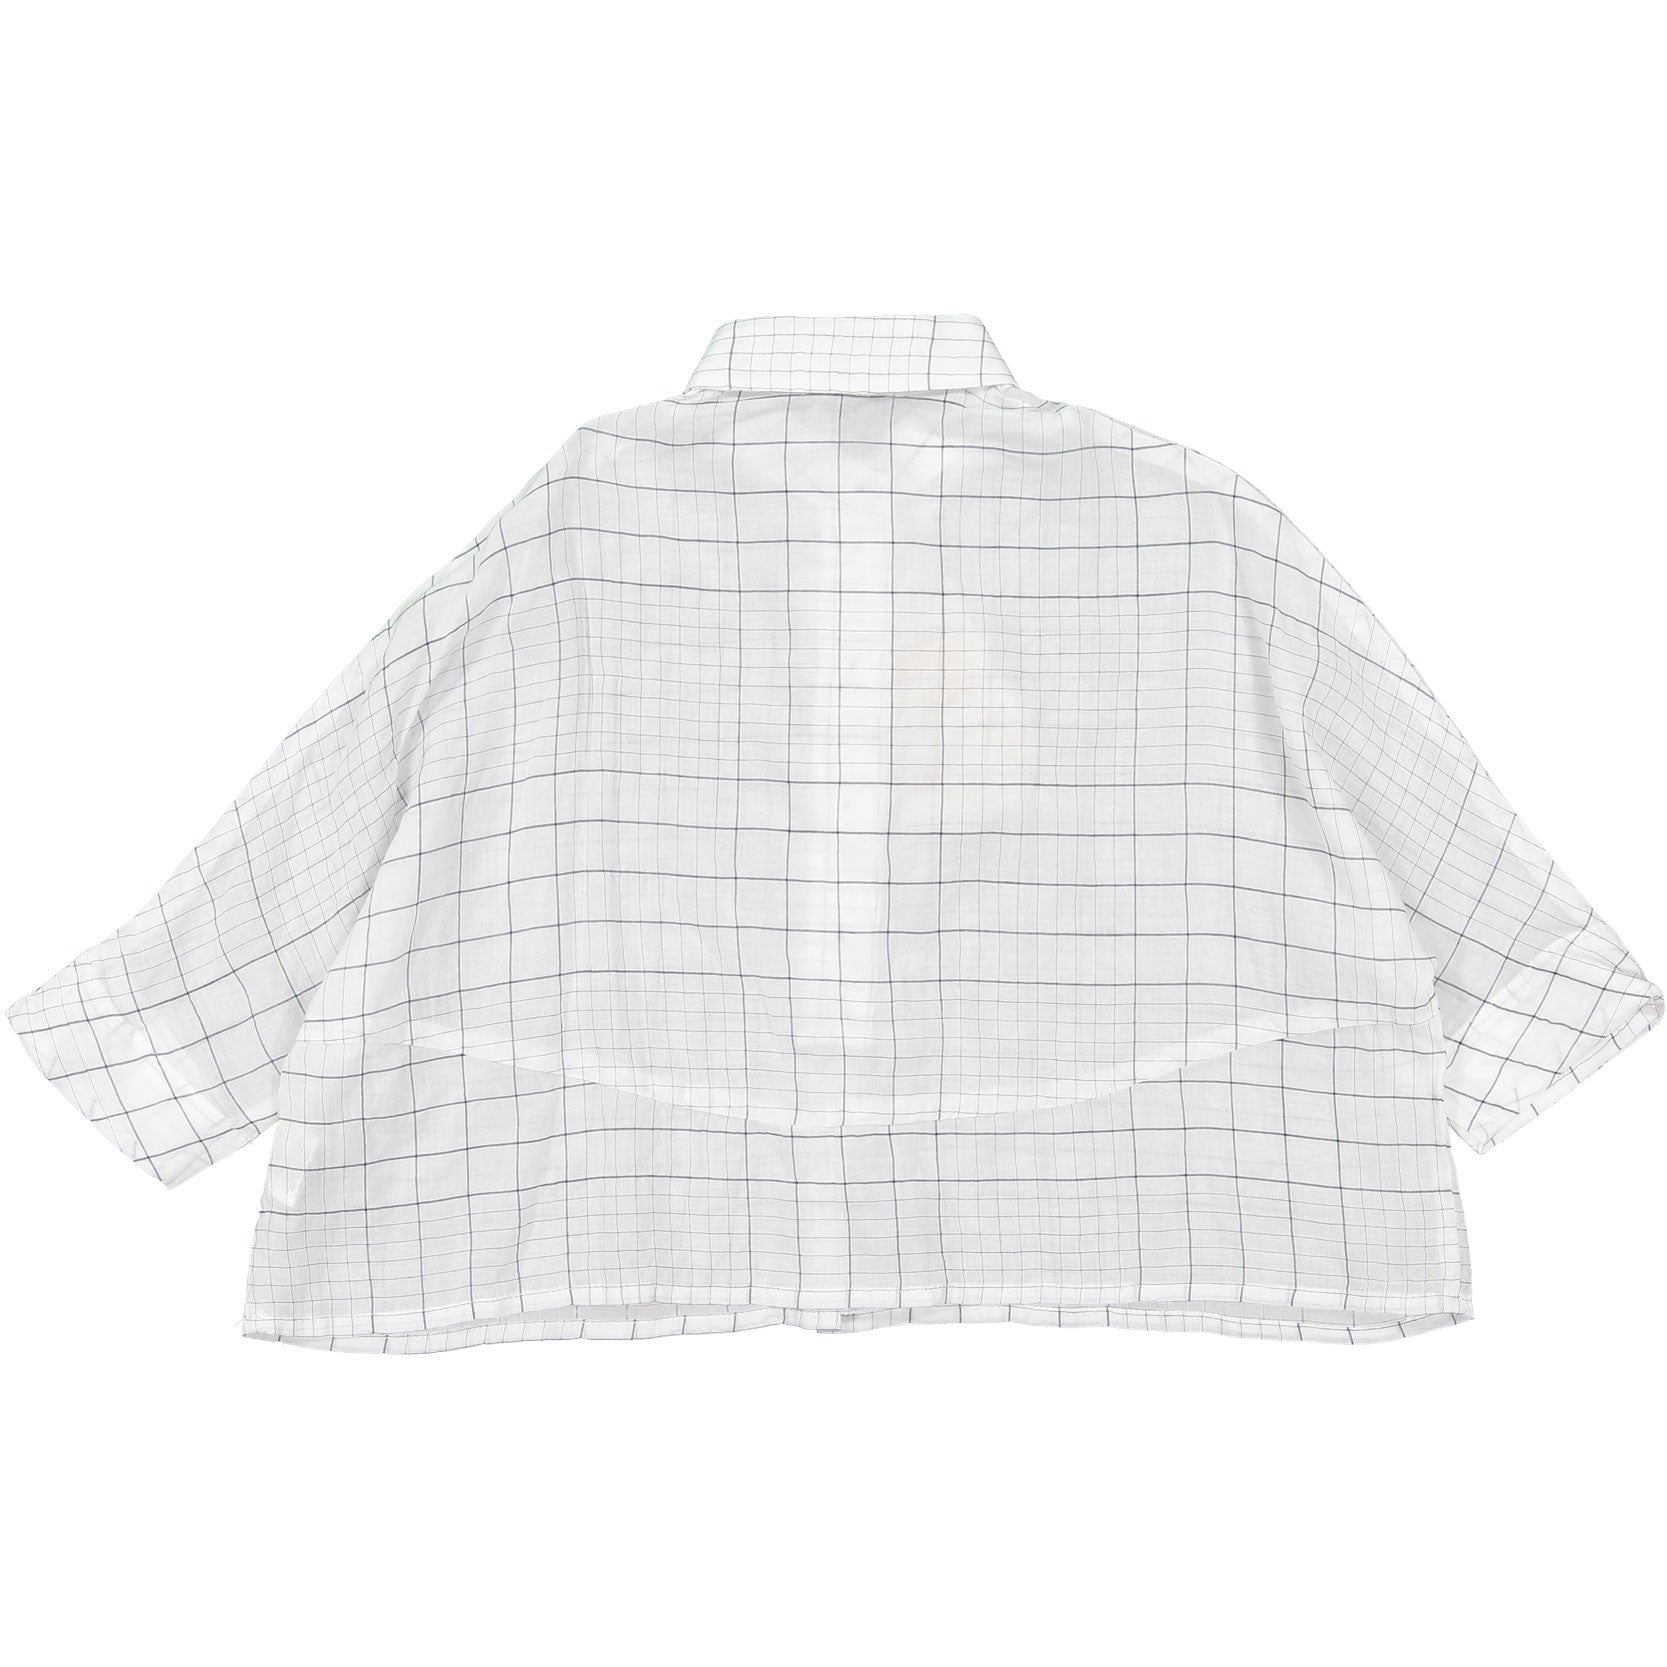 Morley White Grid Blouse - Ladida